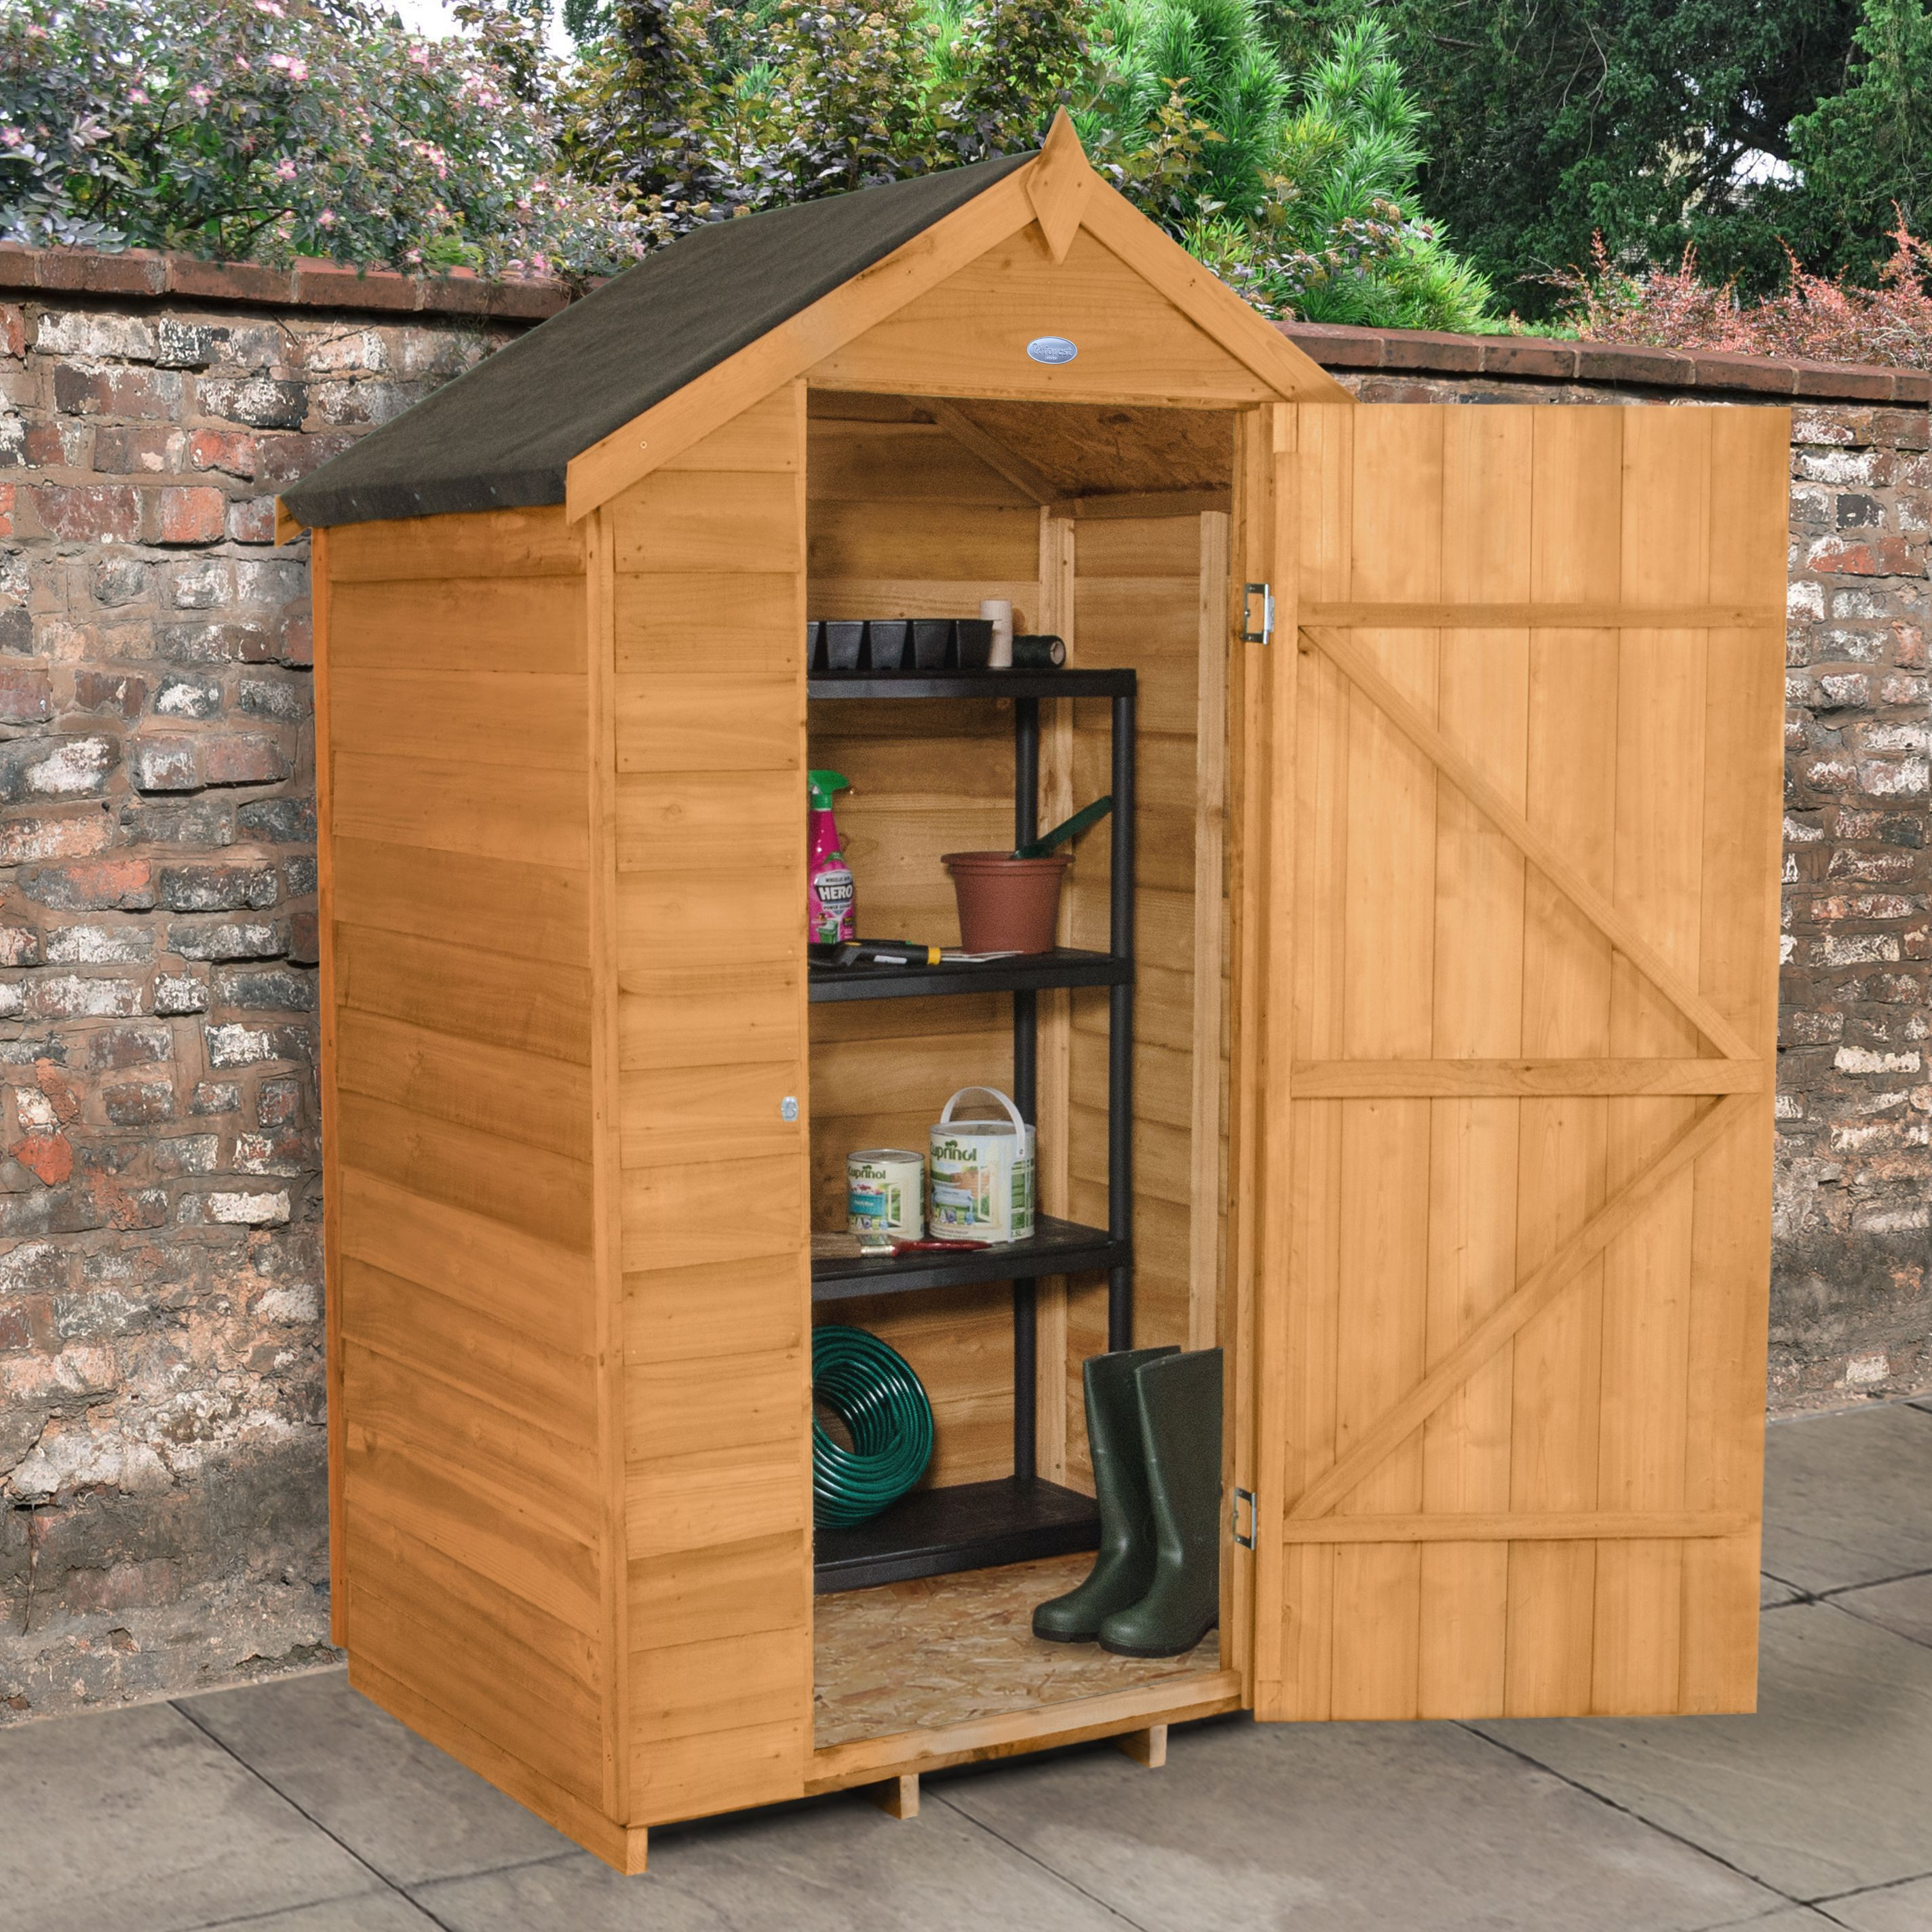 Diy Sheds For Sale: 4X3 Apex Overlap Wooden Shed